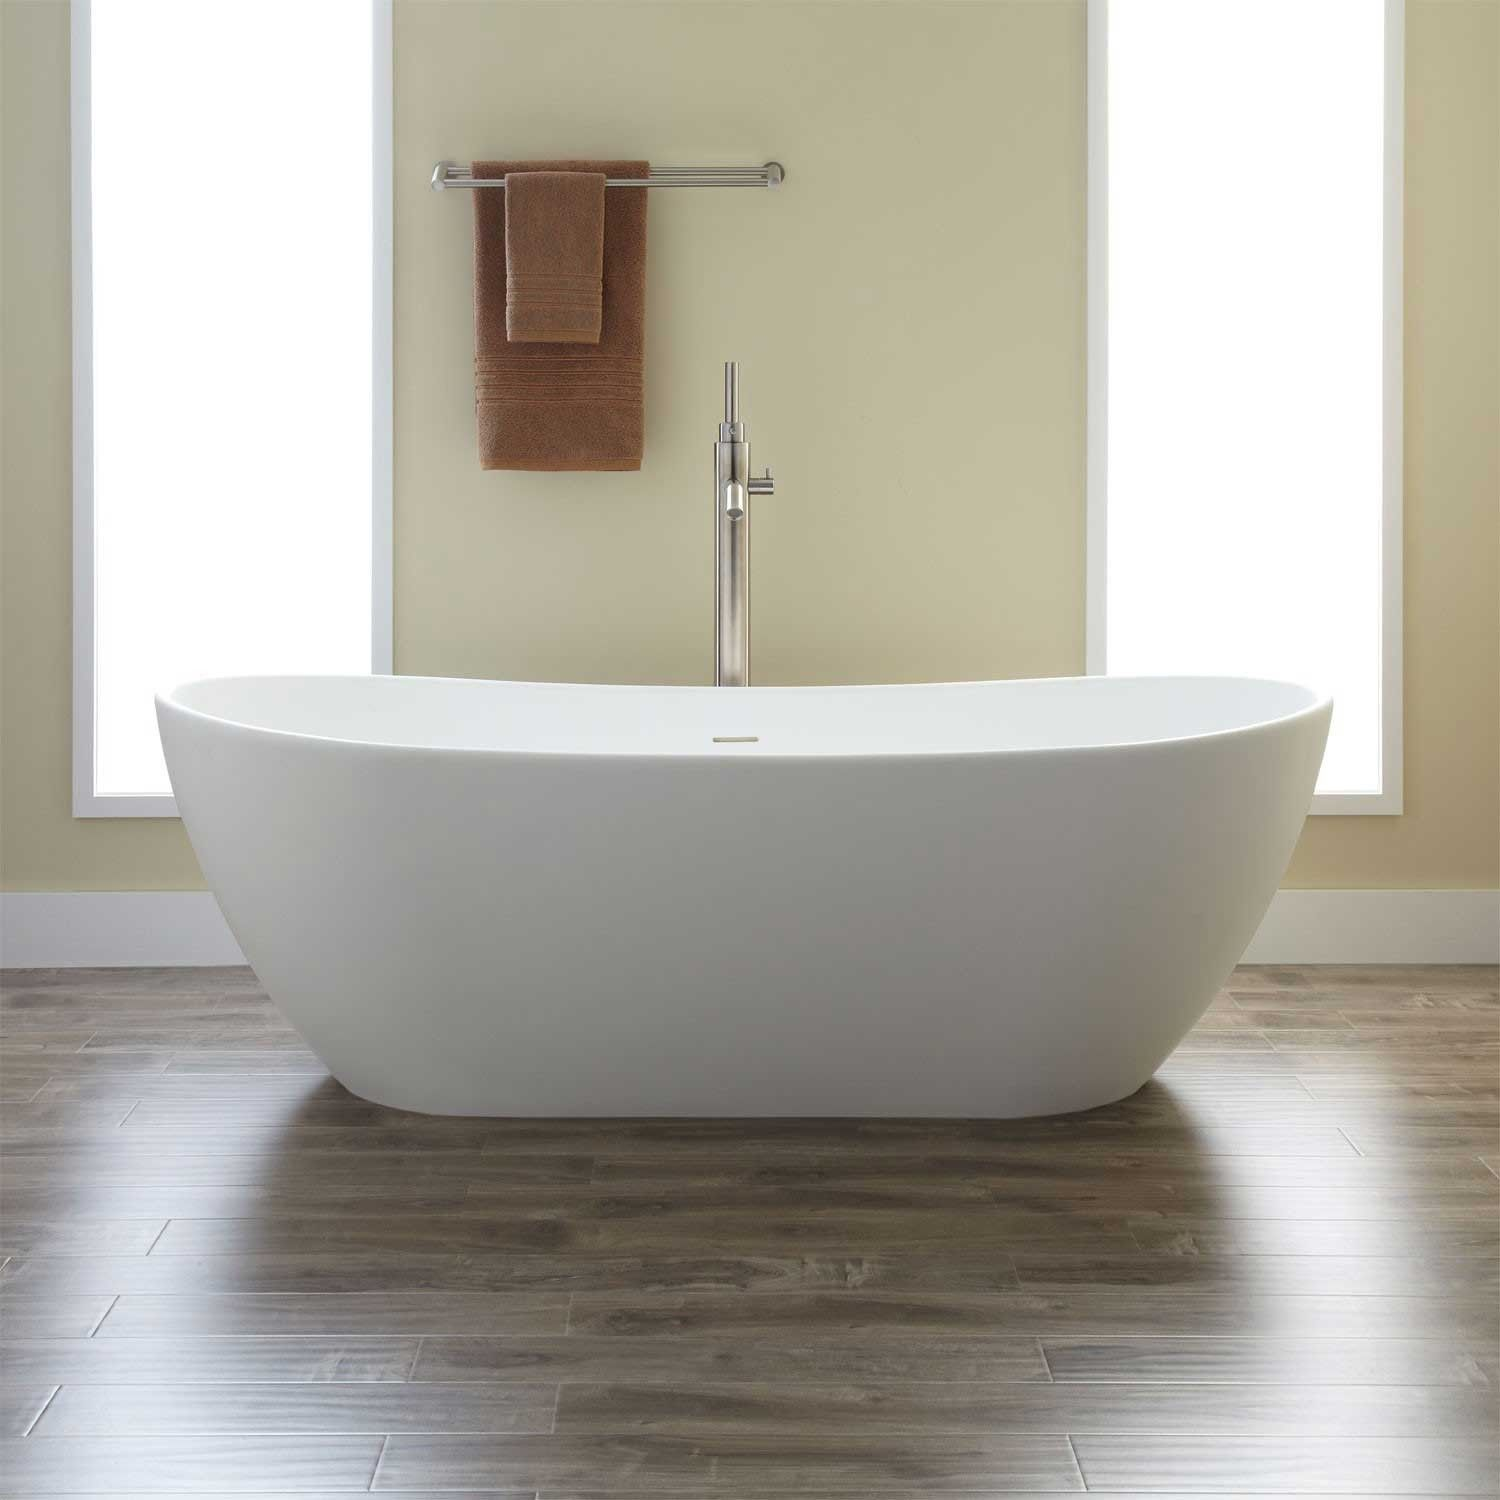 Winifred Resin Freestanding Tub Middle Bath And Love This - Free standing tub dimensions